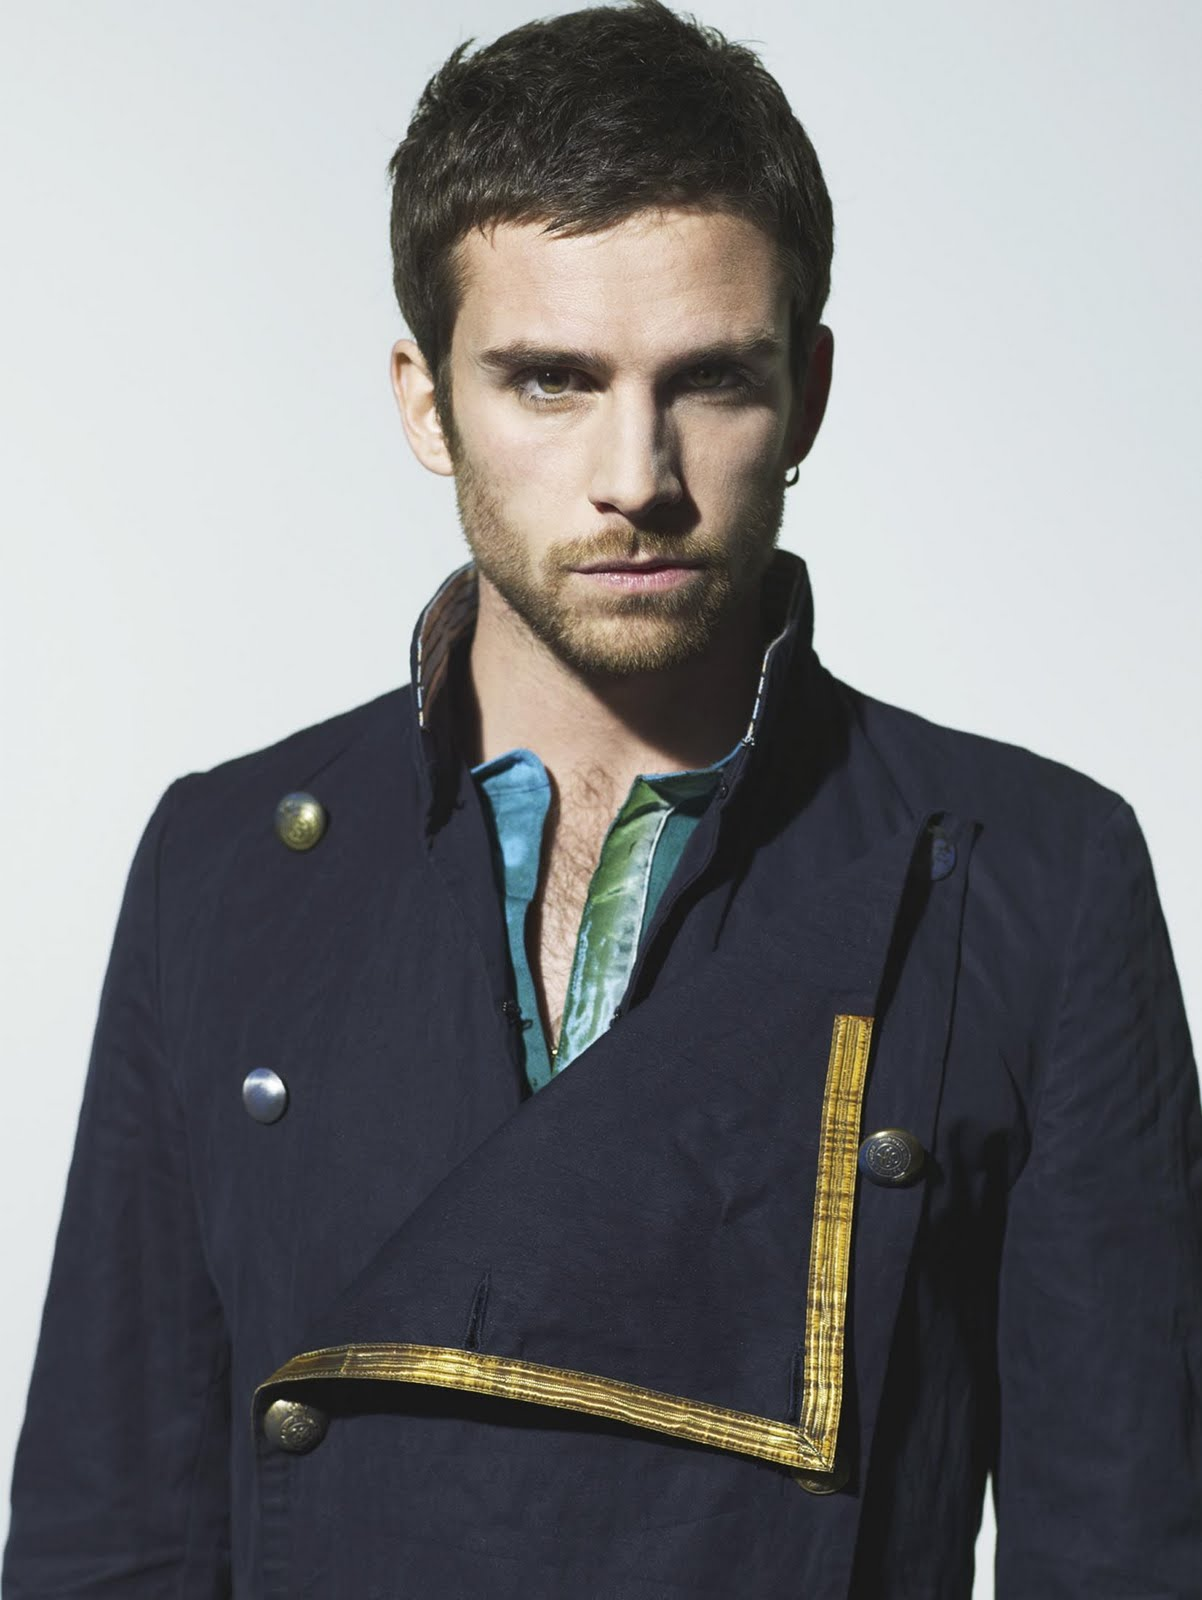 The 40-year old son of father (?) and mother(?), 175 cm tall Guy Berryman in 2018 photo